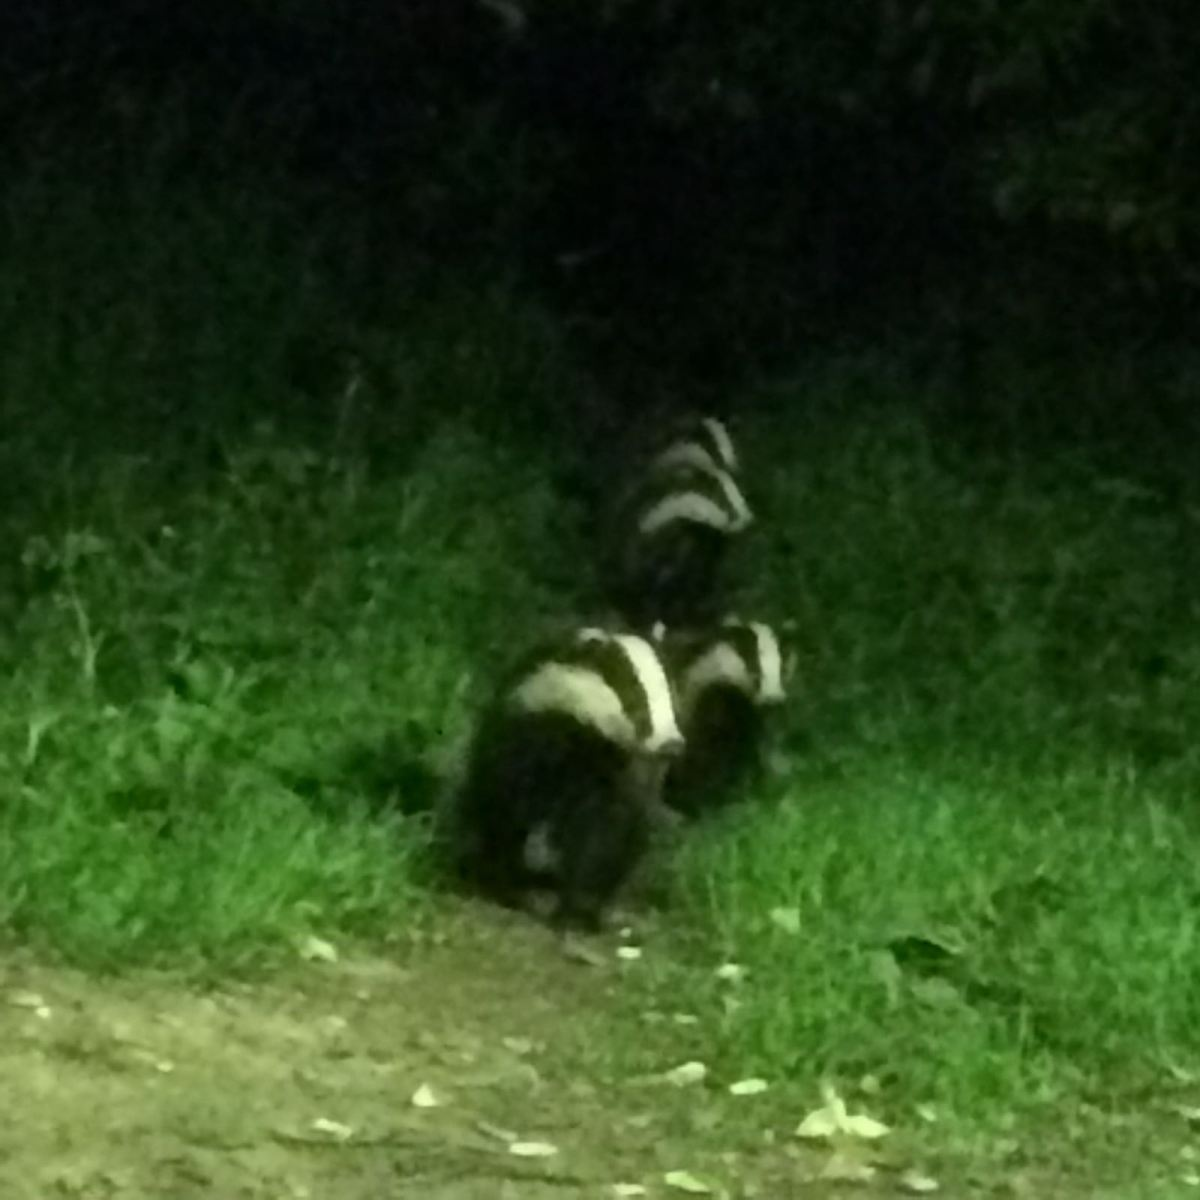 Four-Badgers-at-Tewin-Orchard-Hertfordshire